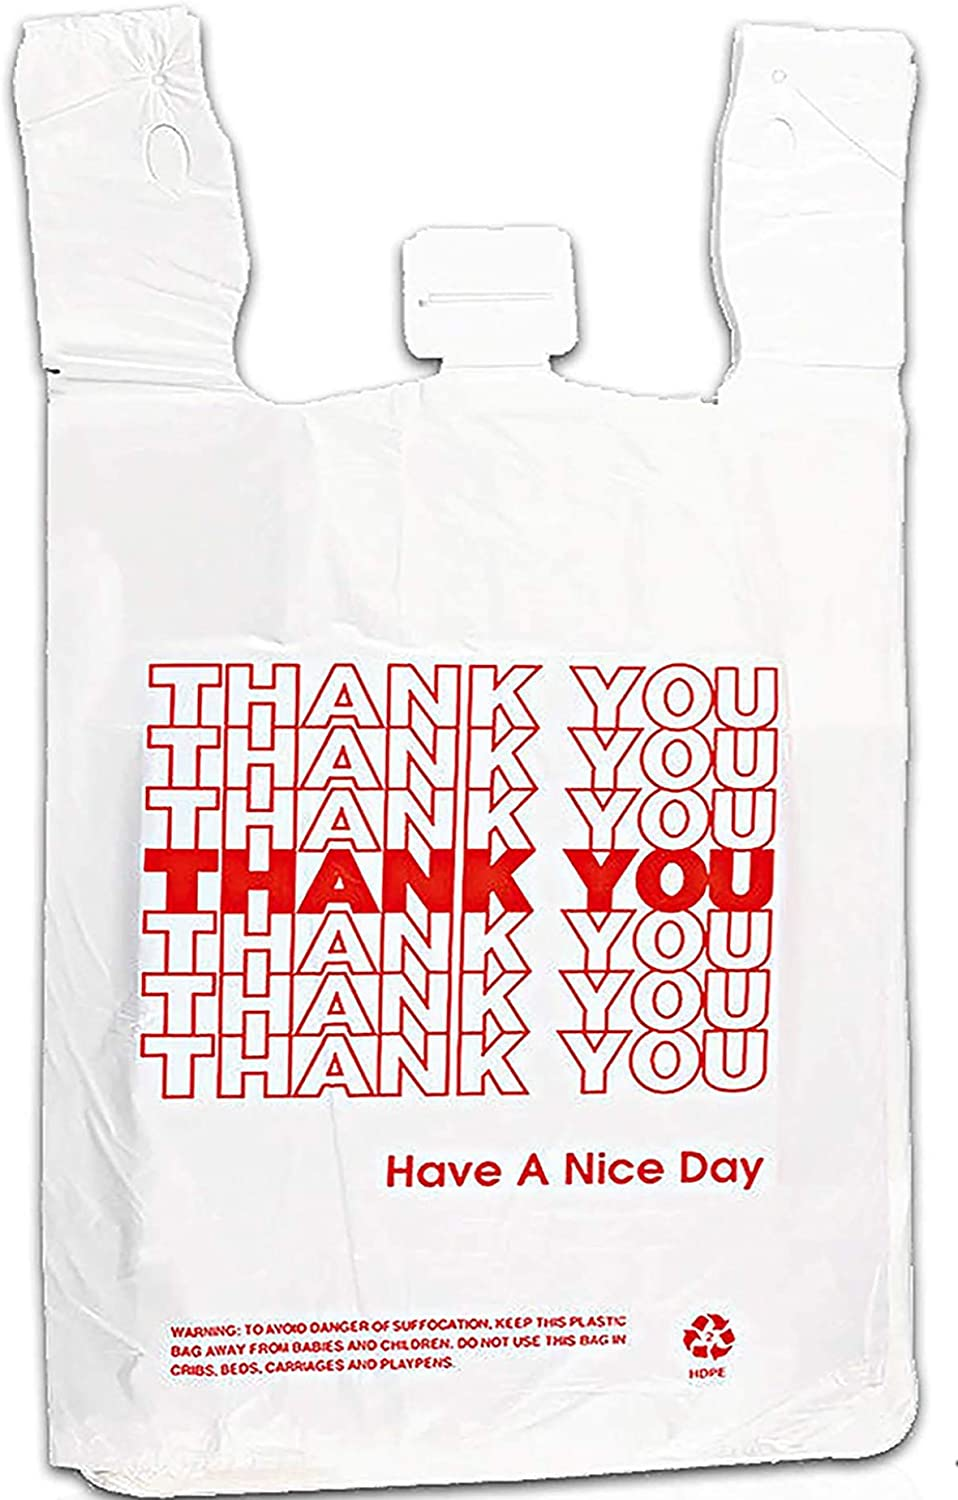 Thank You Bags,Reusable Plastic Grocery Bags - Great Bags for Shopping, Small Kitchen Trash and Garbage Cans, and Dog Waste - 300 Count,Case